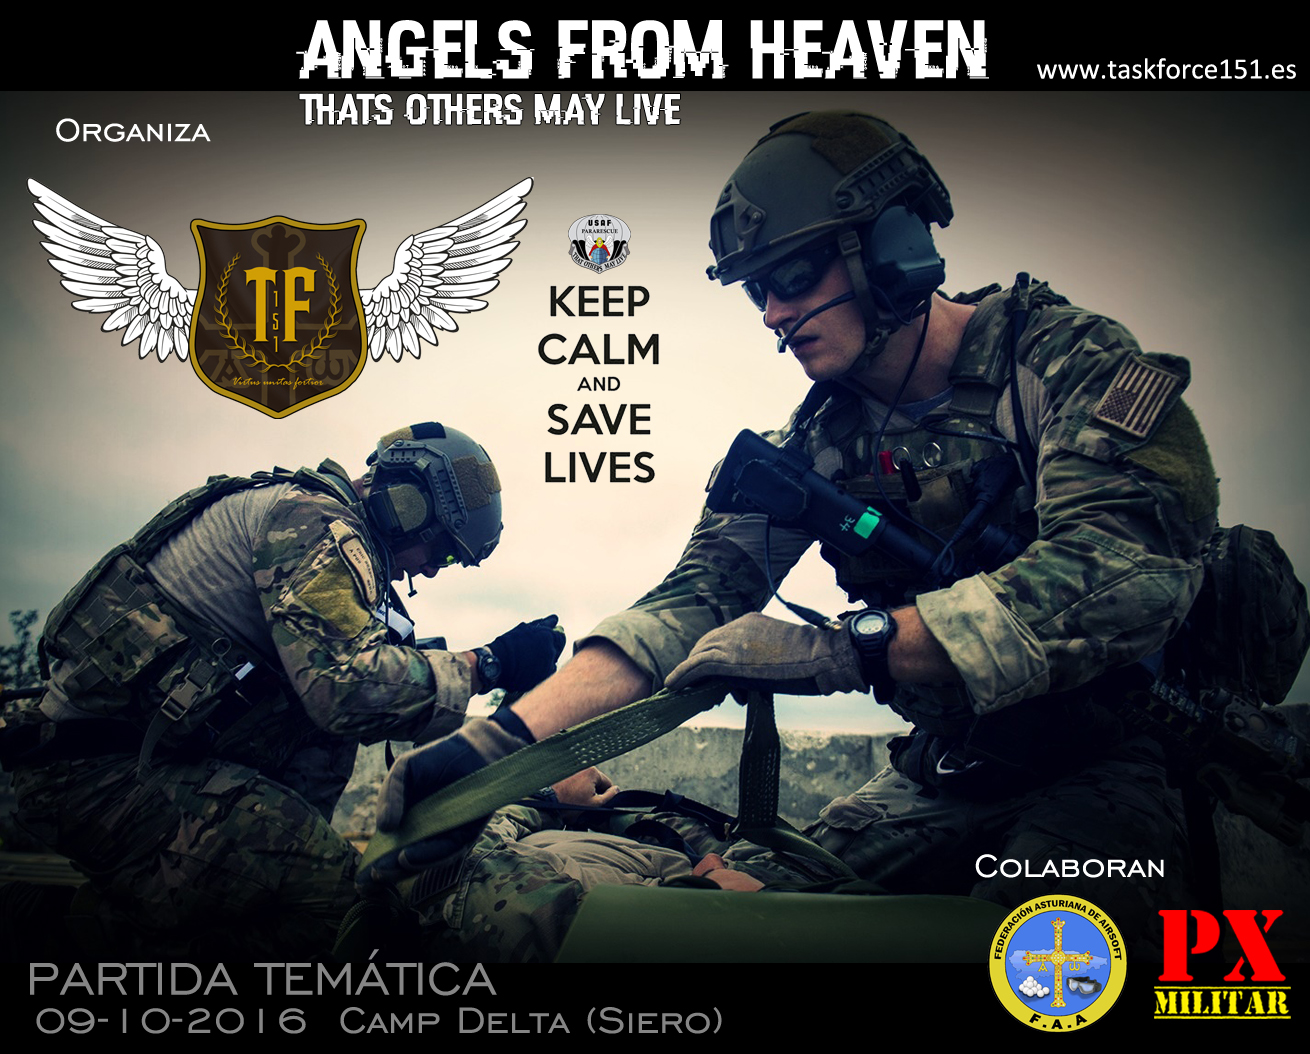 cartel-heaven-angels